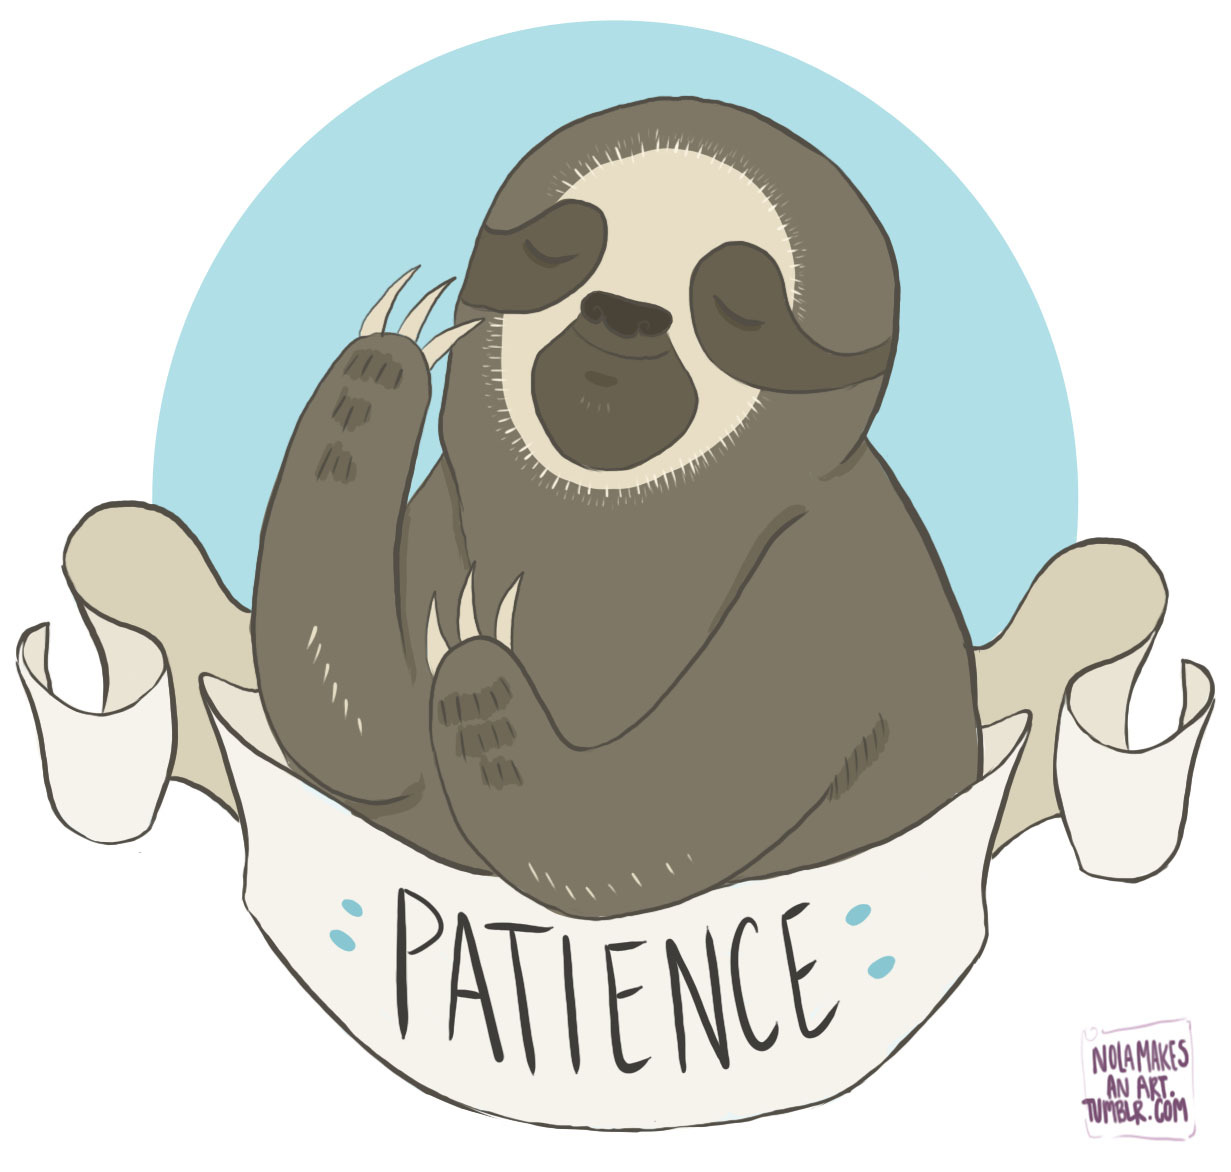 "SLOTHS, PEOPLE, ITS A FREAKIN' SLOTH. ""Patience"" Sloth, coming soon to my Big Cartel shop! https://nolamakesanart.bigcartel.com/"